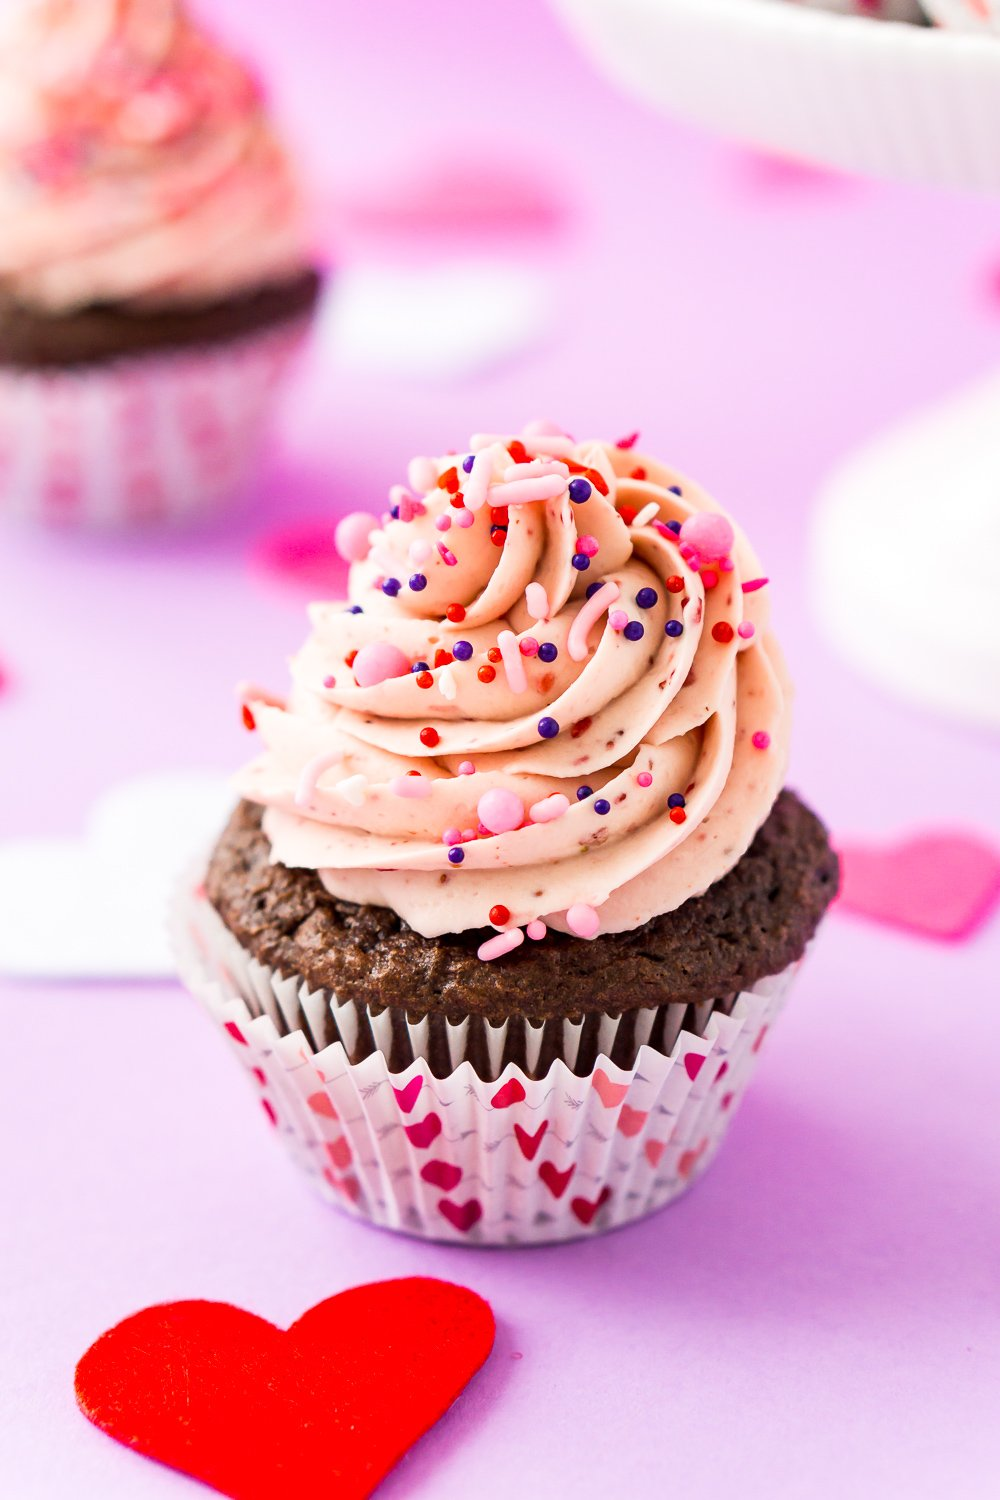 These Strawberry Chocolate Cupcakes are a delicious blend of rich chocolate cake and sweet strawberry whipped cream frosting! Perfect for Valentine's Day, Baby Showers, Bridal Showers, and more!